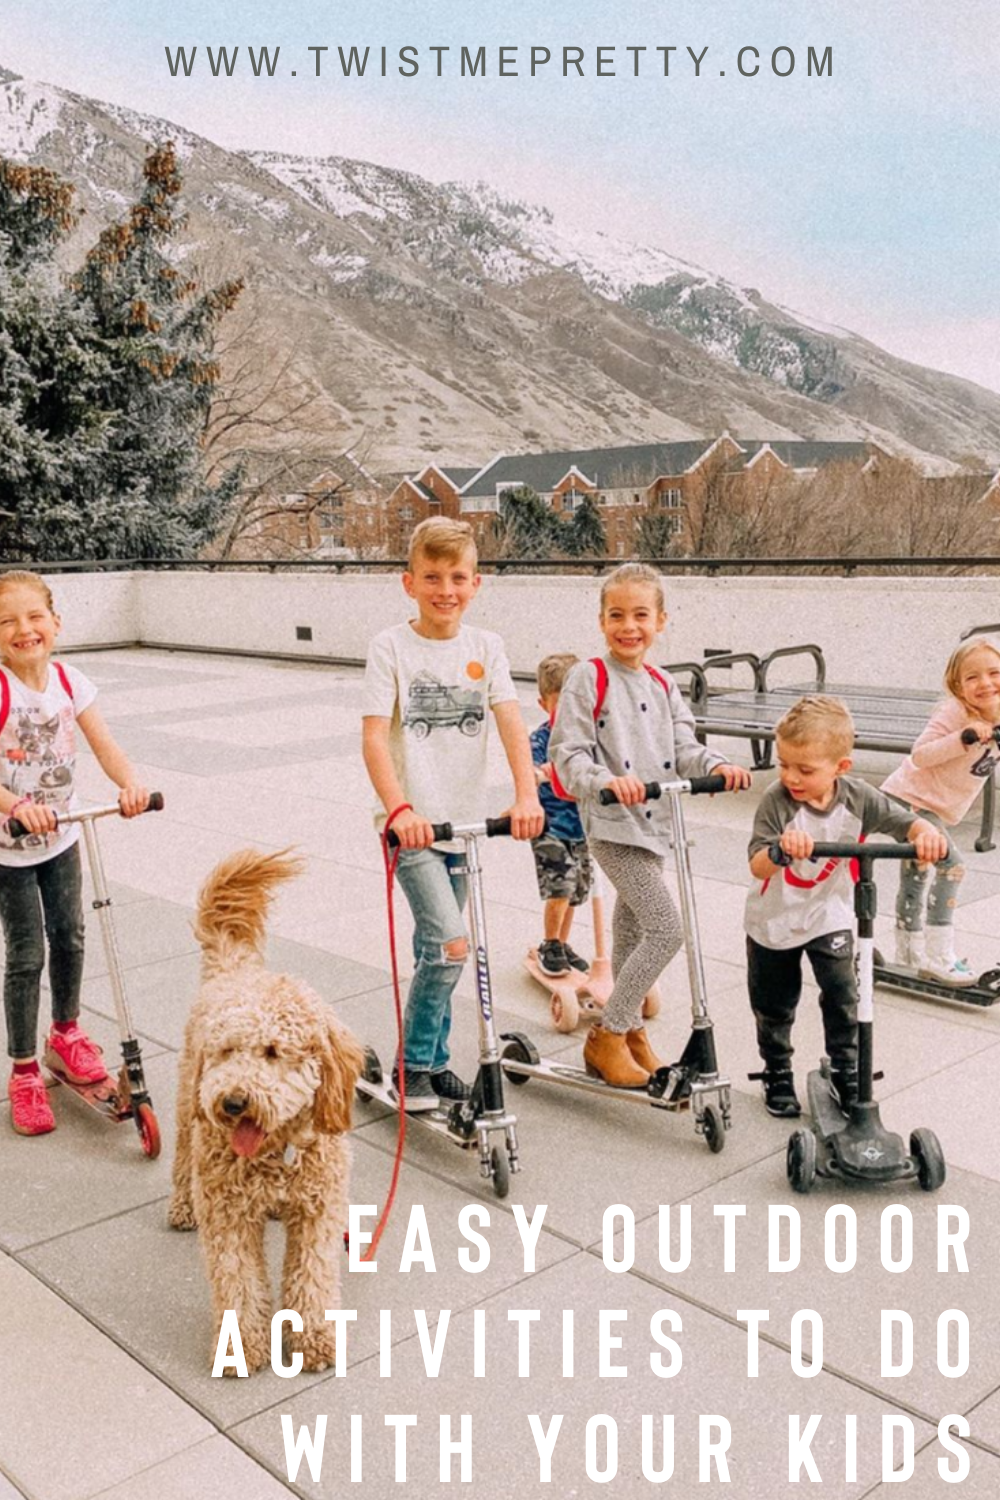 10 Easy outdoor activities to do with your kids. www.twistmepretty.com